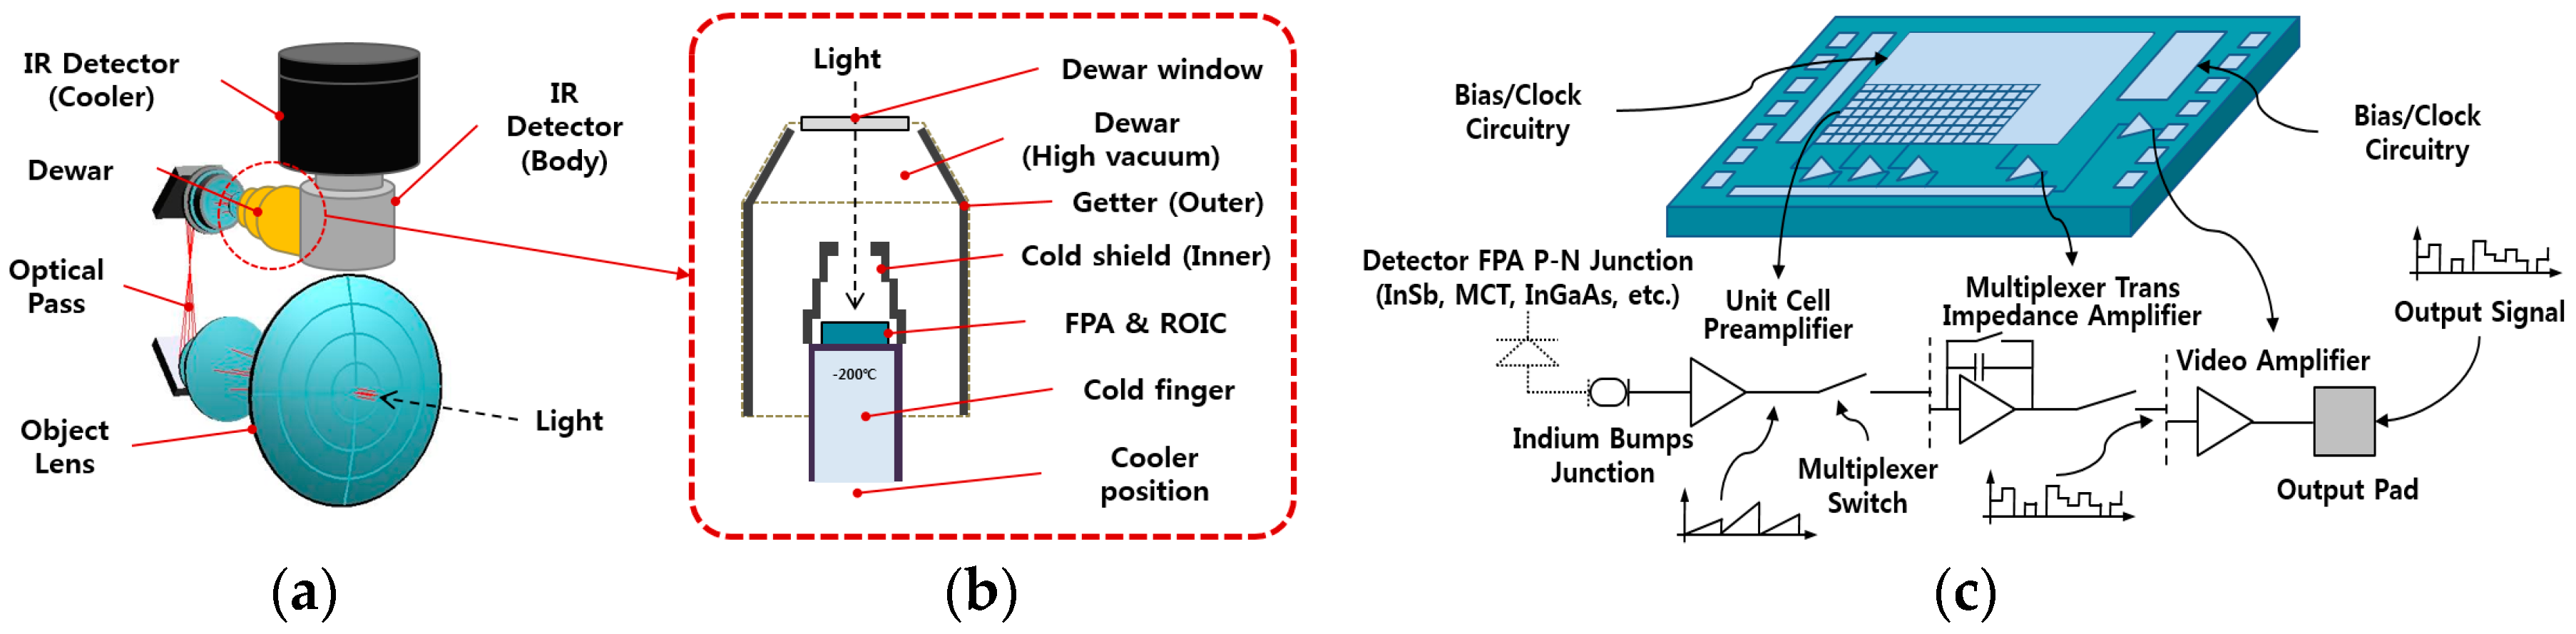 Subjects Infra Red Circuits Optical Sensors Opto Electronic Circuits